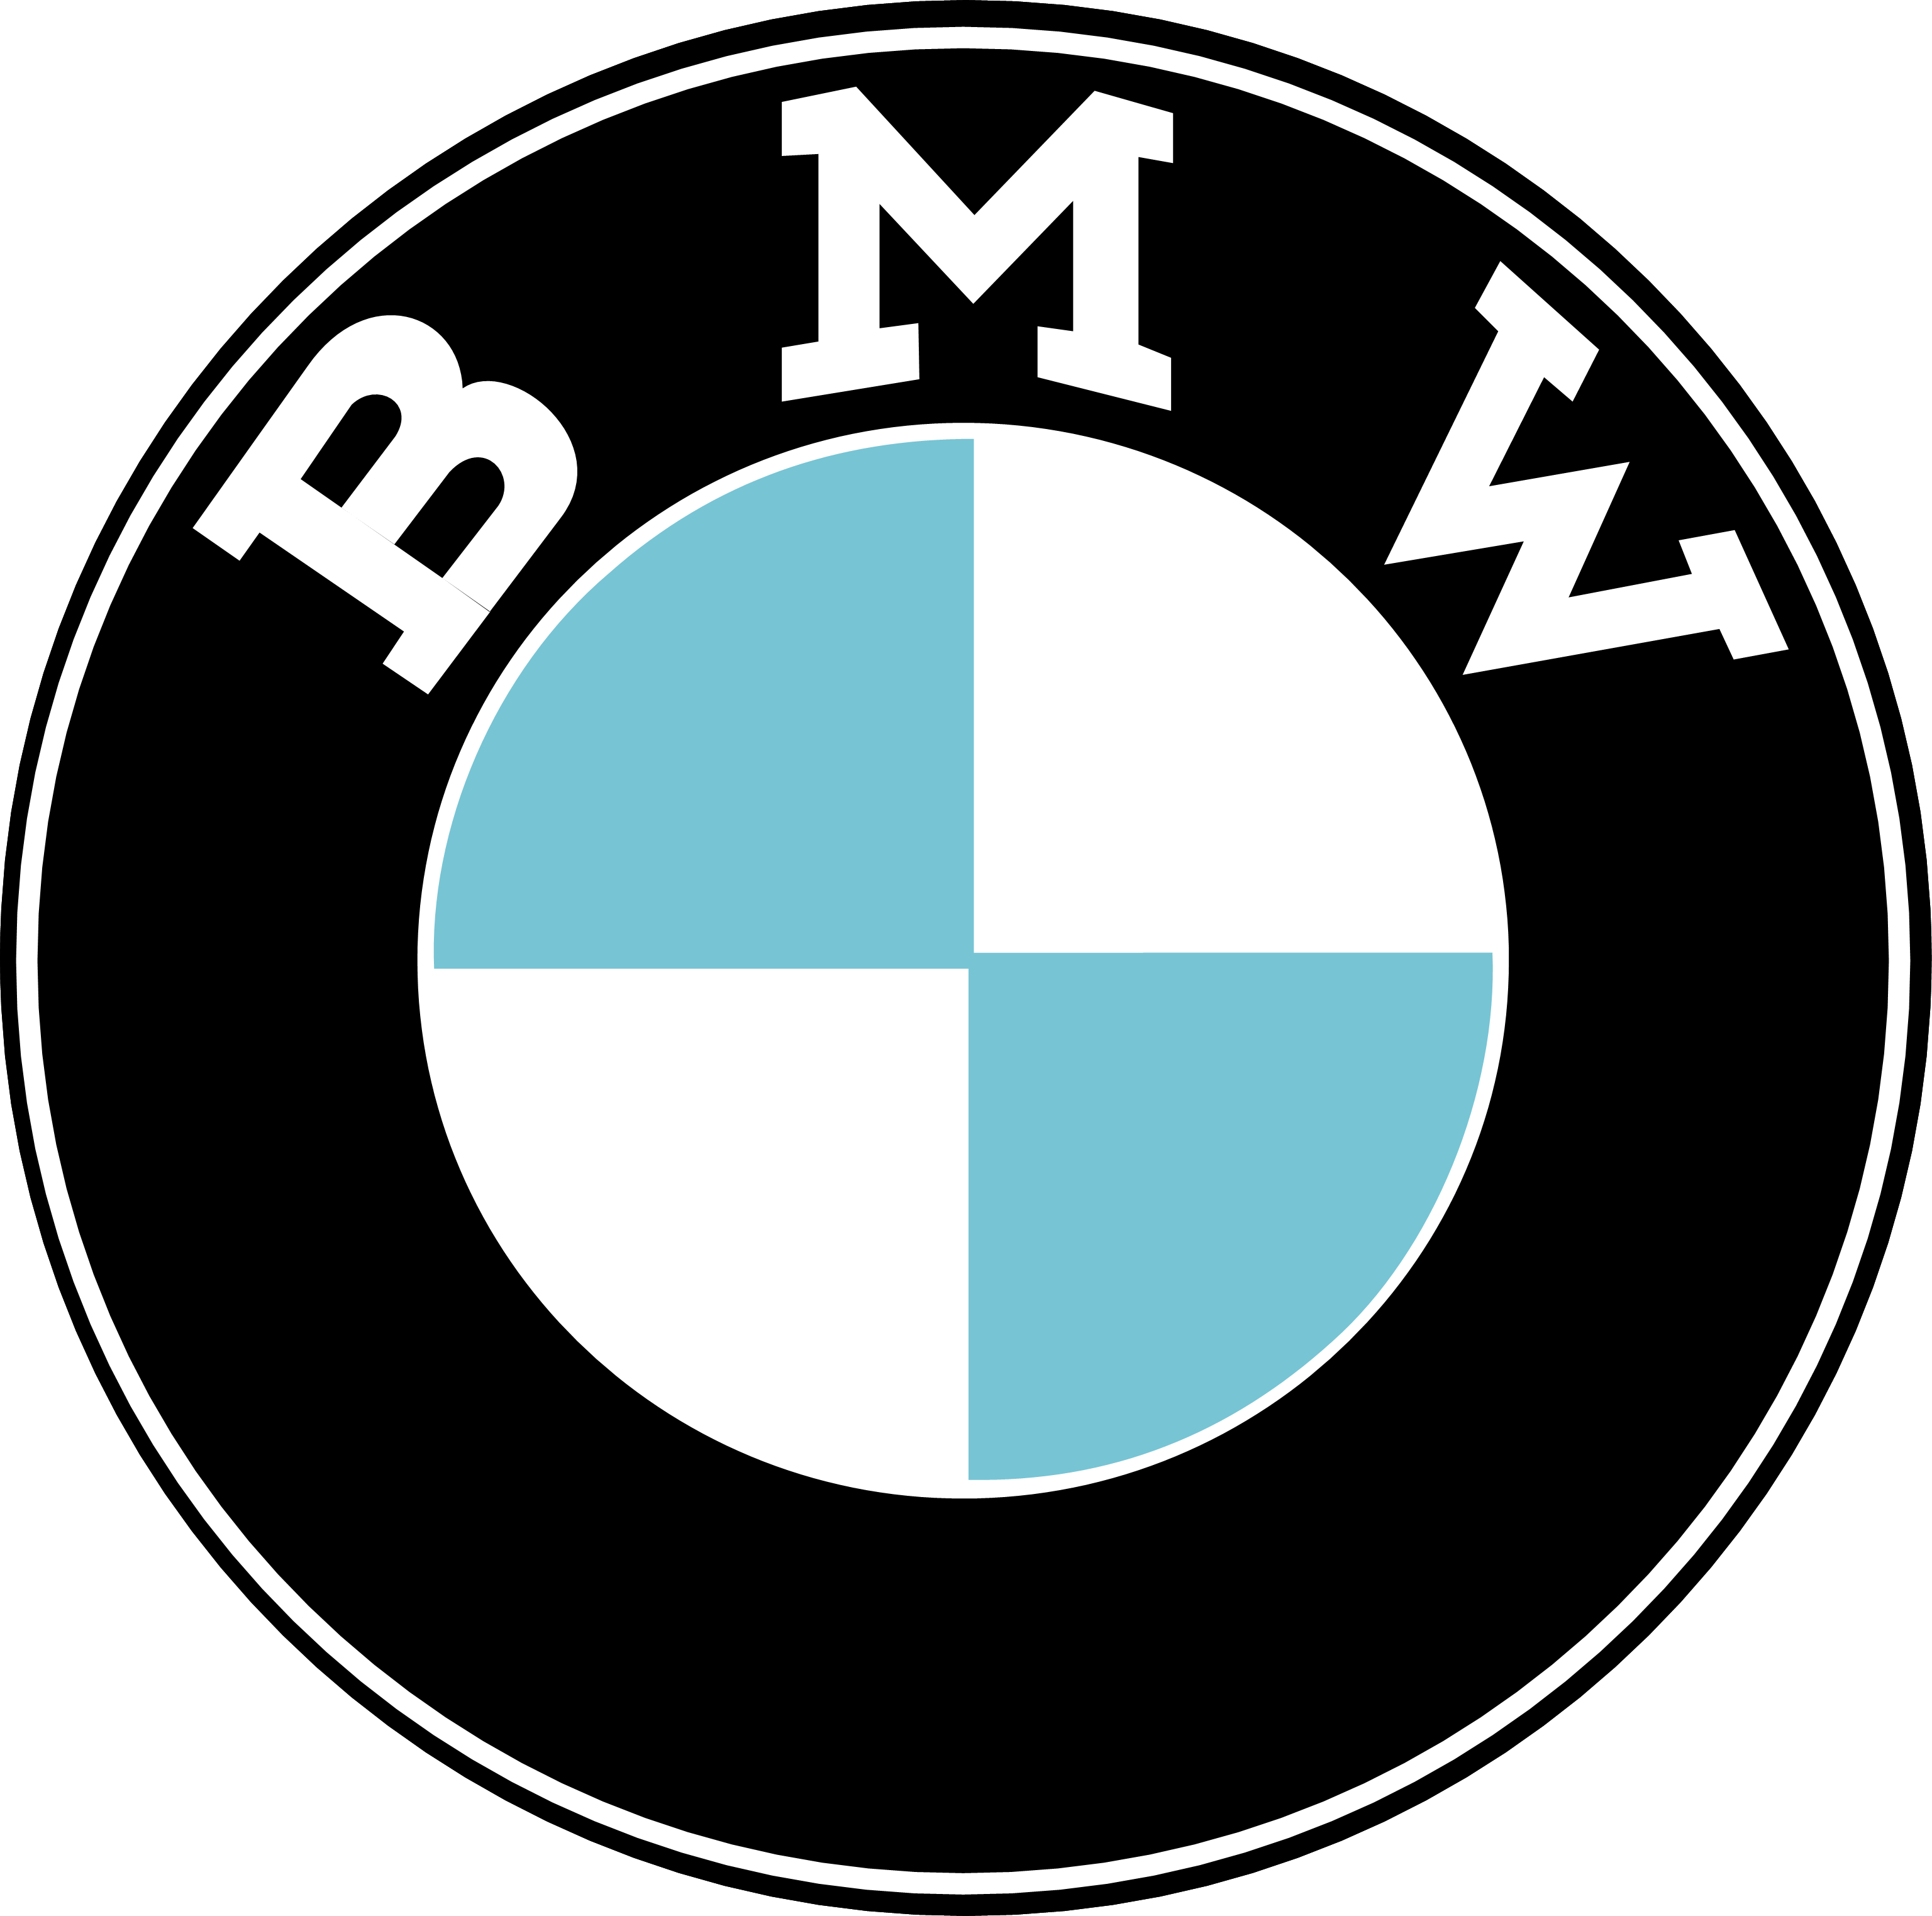 Bmw Logo Transparent Background Www Imgkid Com The Image Kid Has It